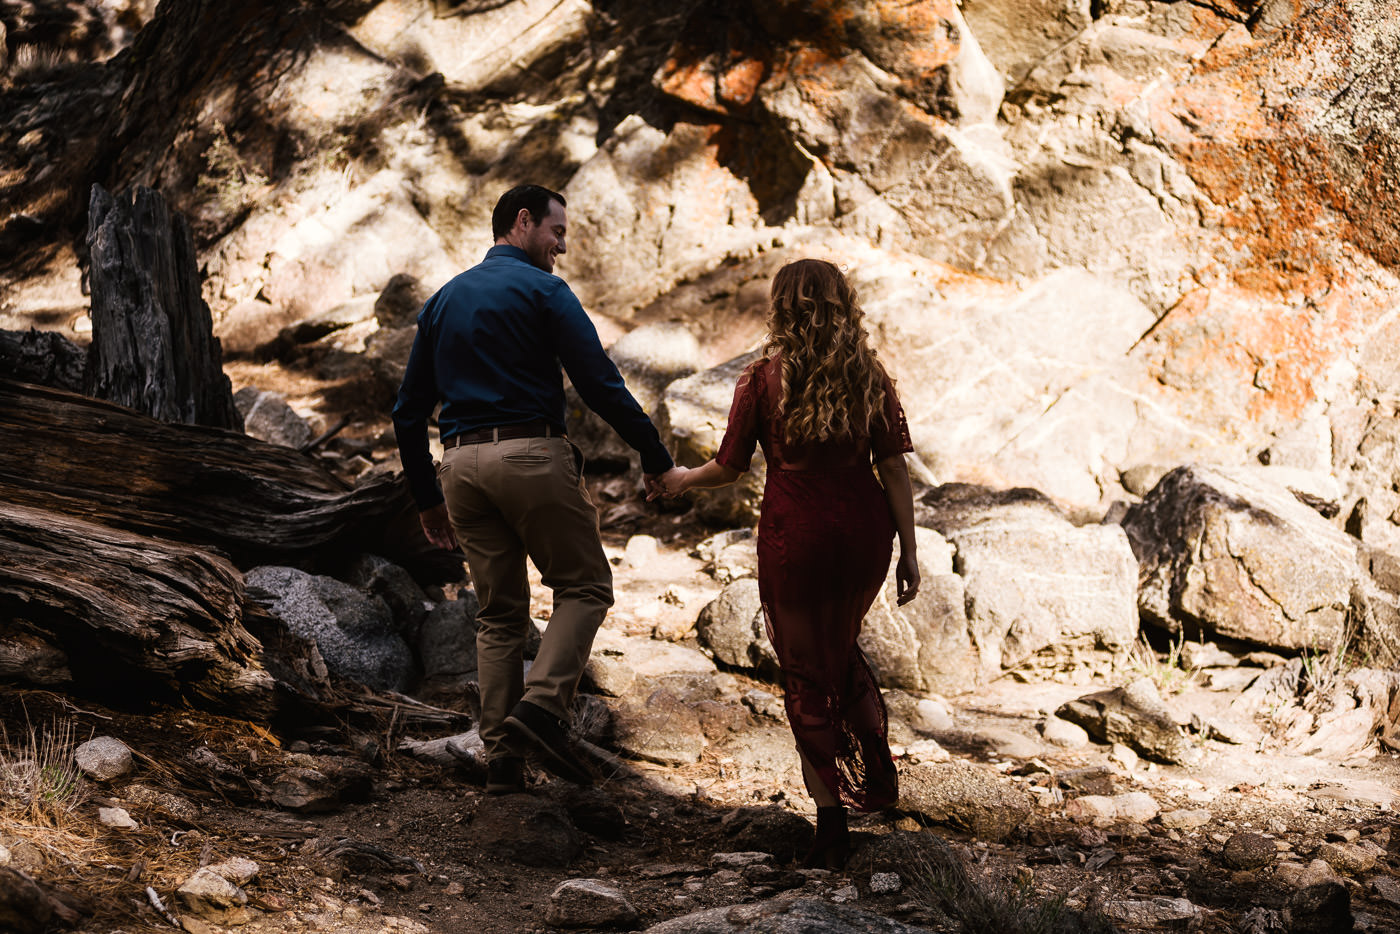 Groom to be leads his fiance through the forest.